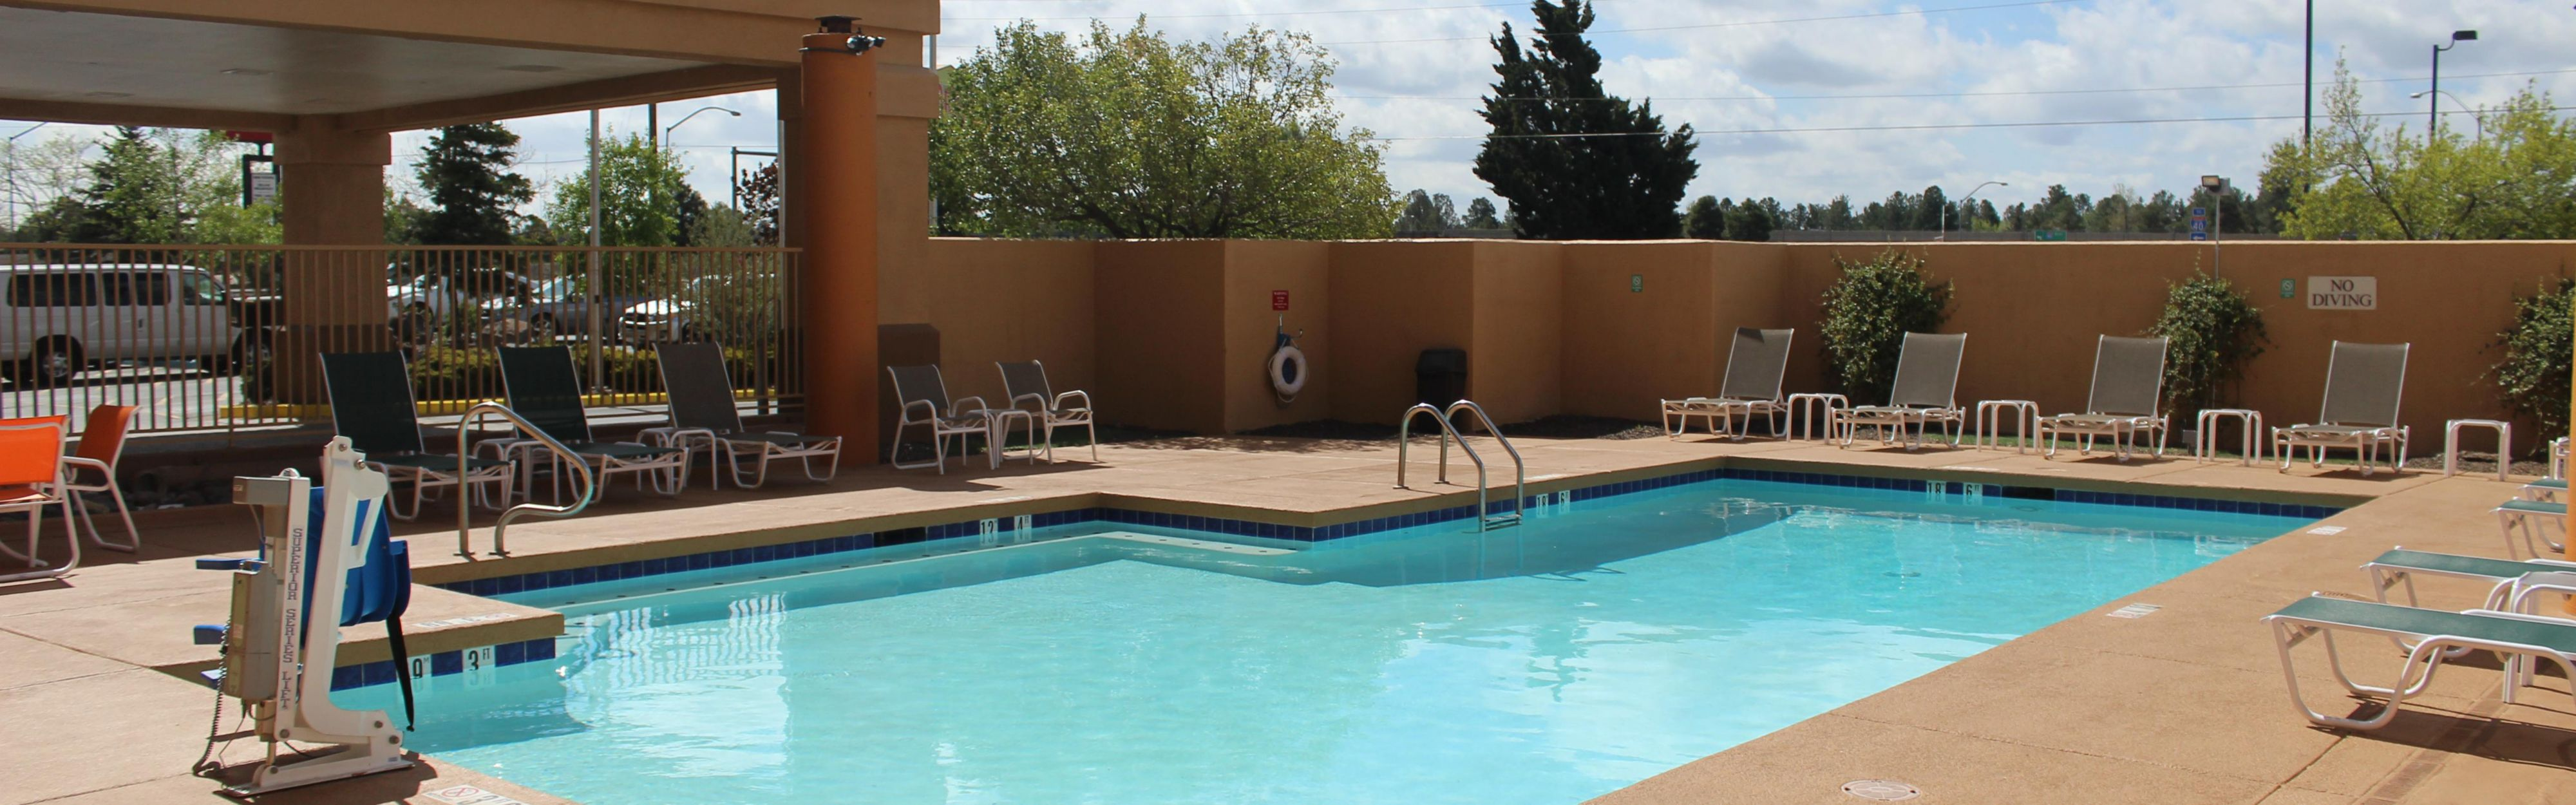 Hotel Holiday Inn Flagstaff